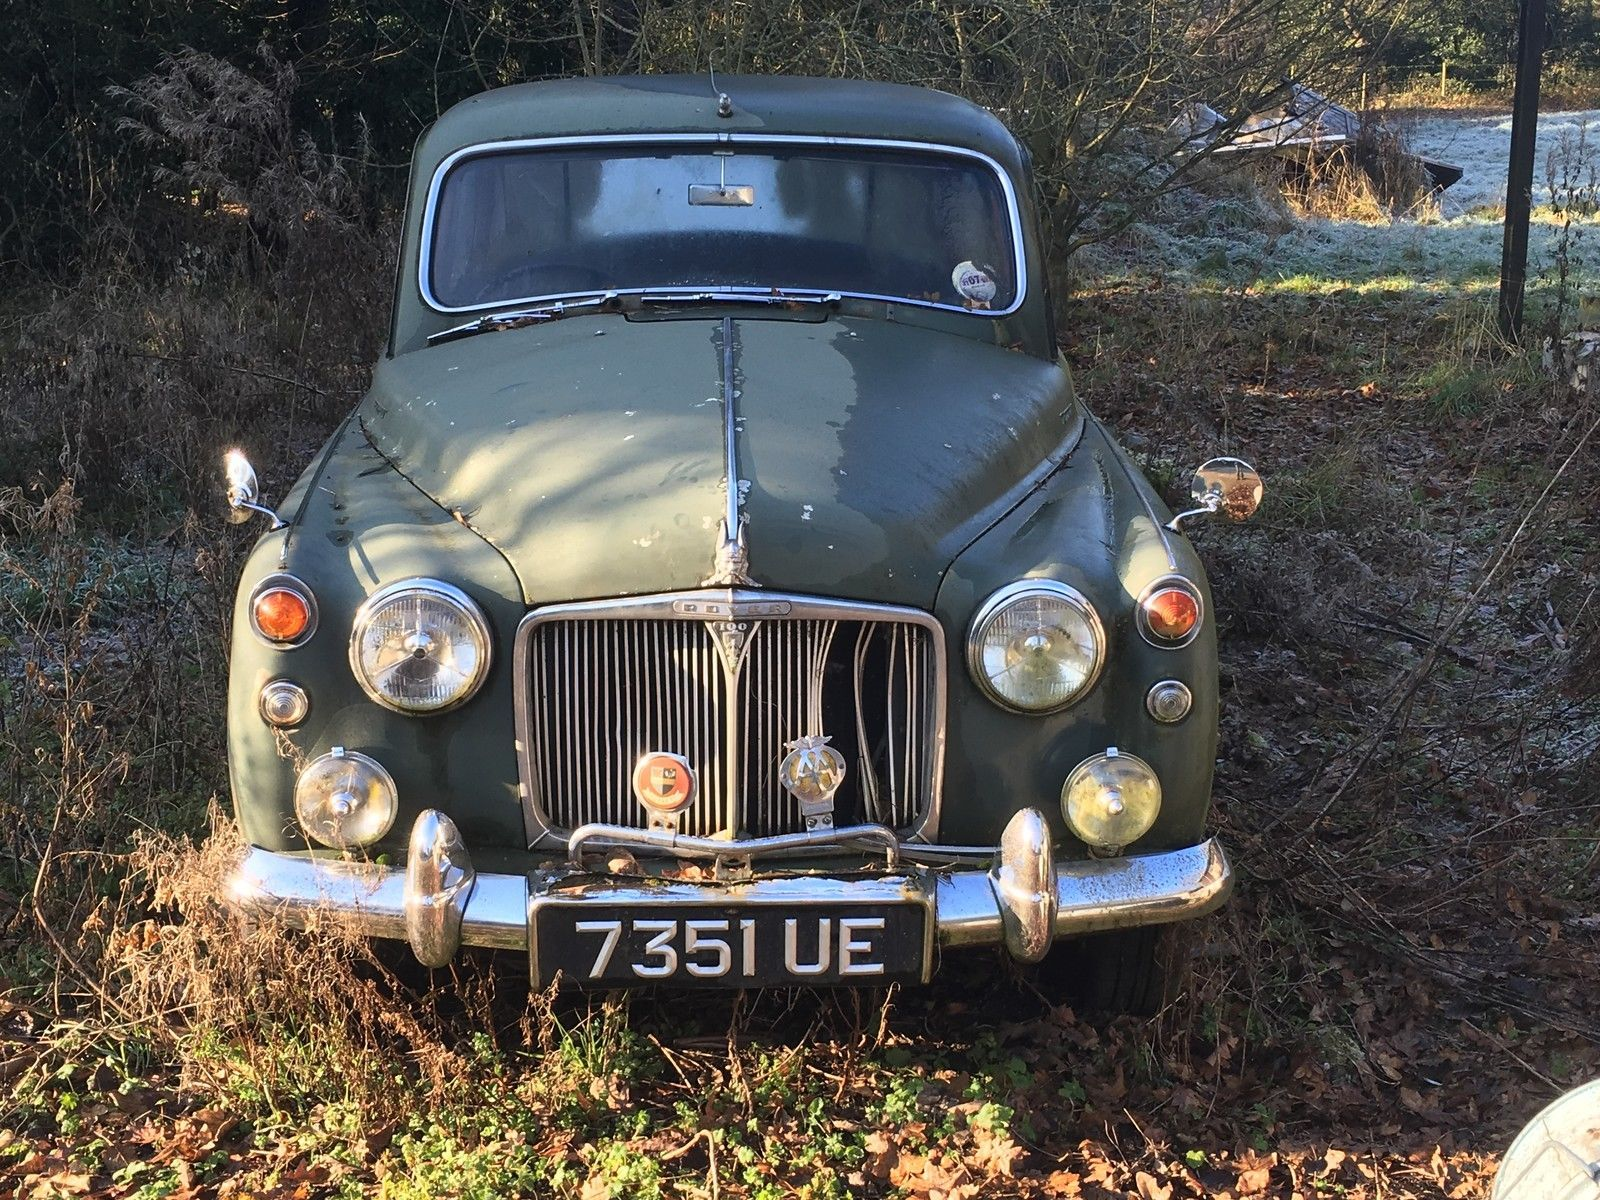 Rover 100 P4 low mileage restoration project https://rover.ebay.com ...